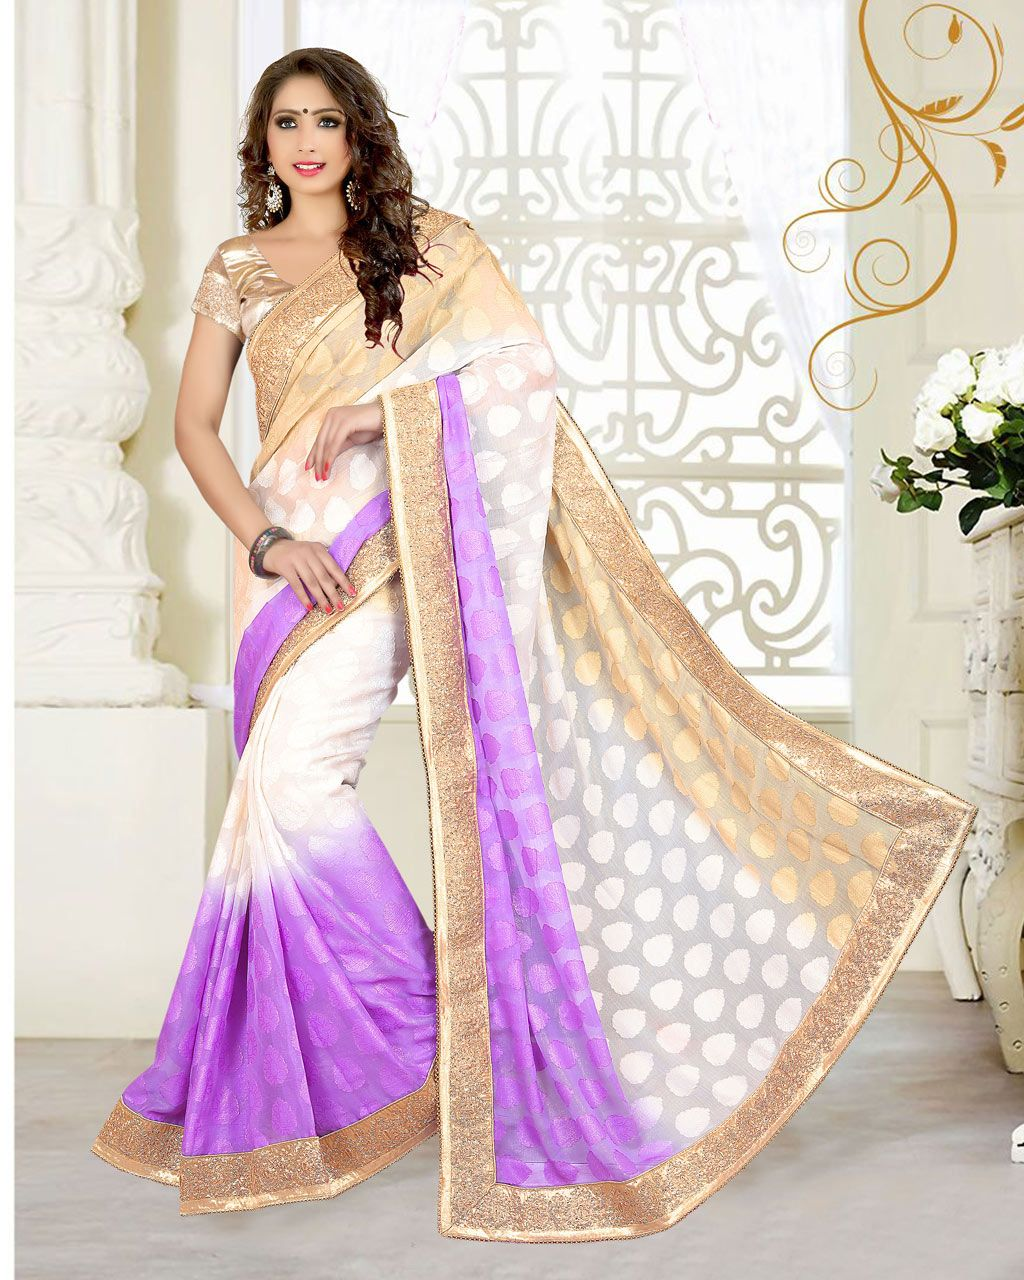 Wedding White Sarees Online: Off White Georgette Jacquard Wedding Saree 63536